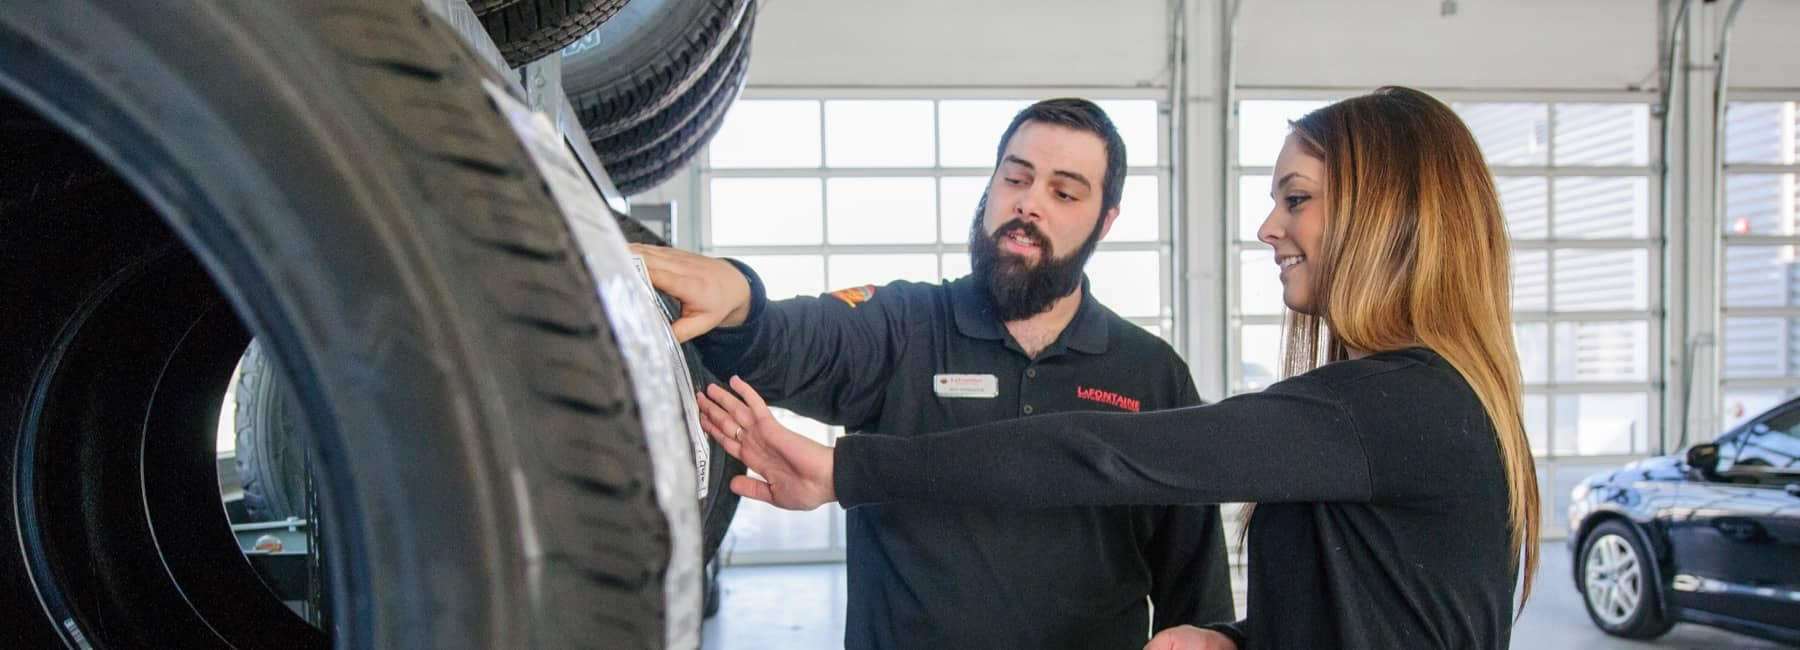 LaFontaine Service Technician looking at Tires